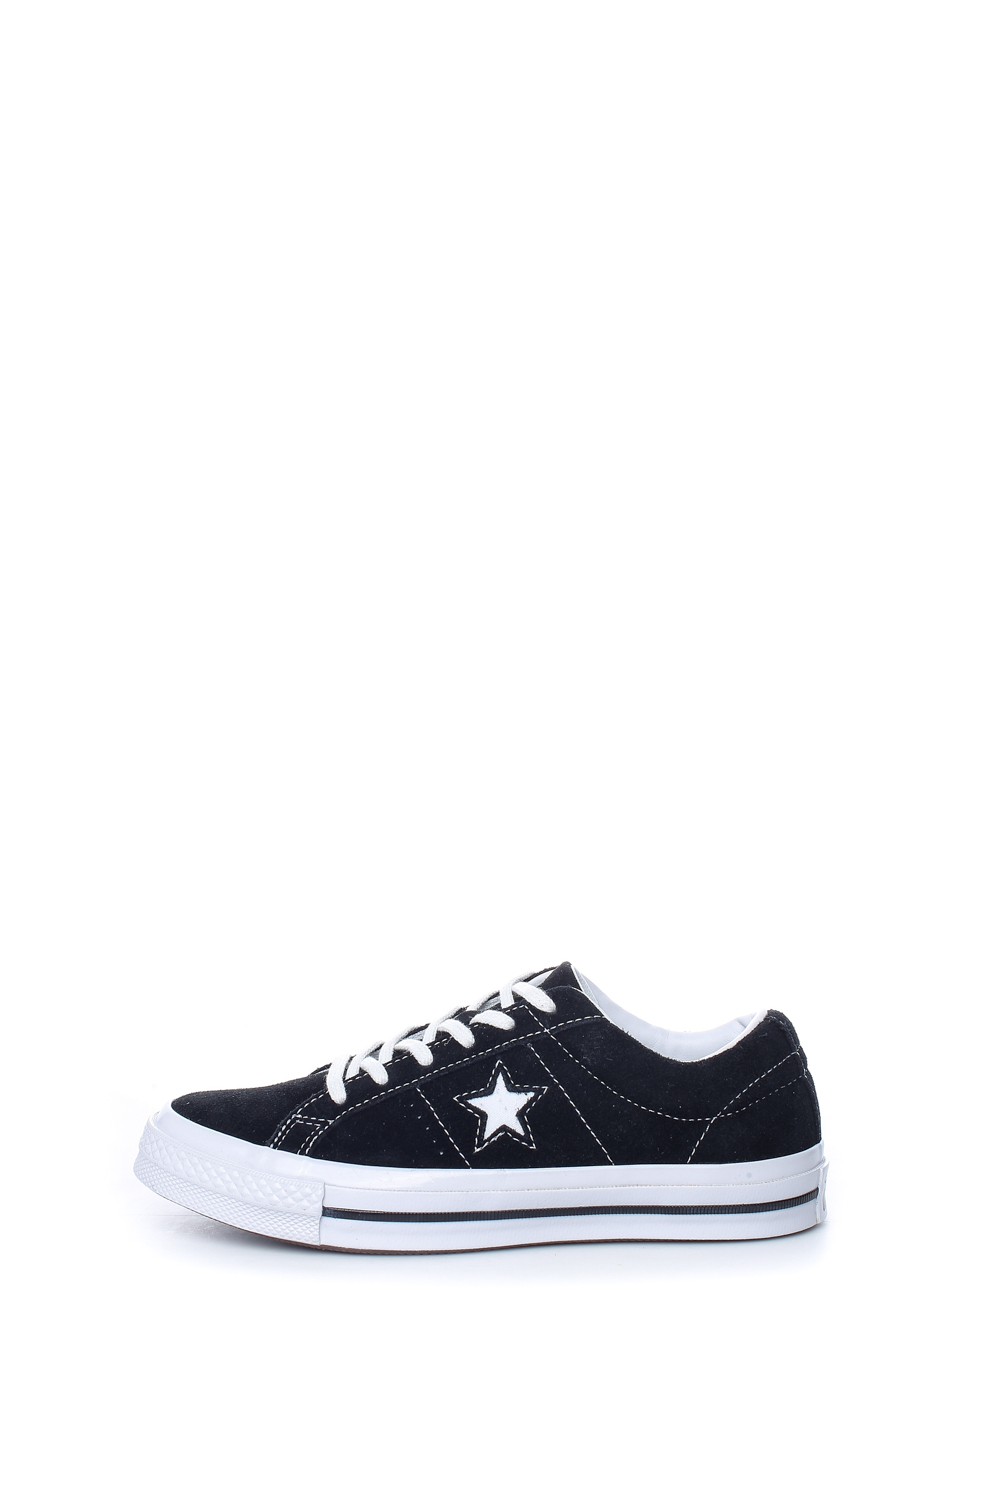 -40% Collective Online CONVERSE – Παιδικά sneakers CONVERSE ONE STAR μαύρα ab75d333a0a